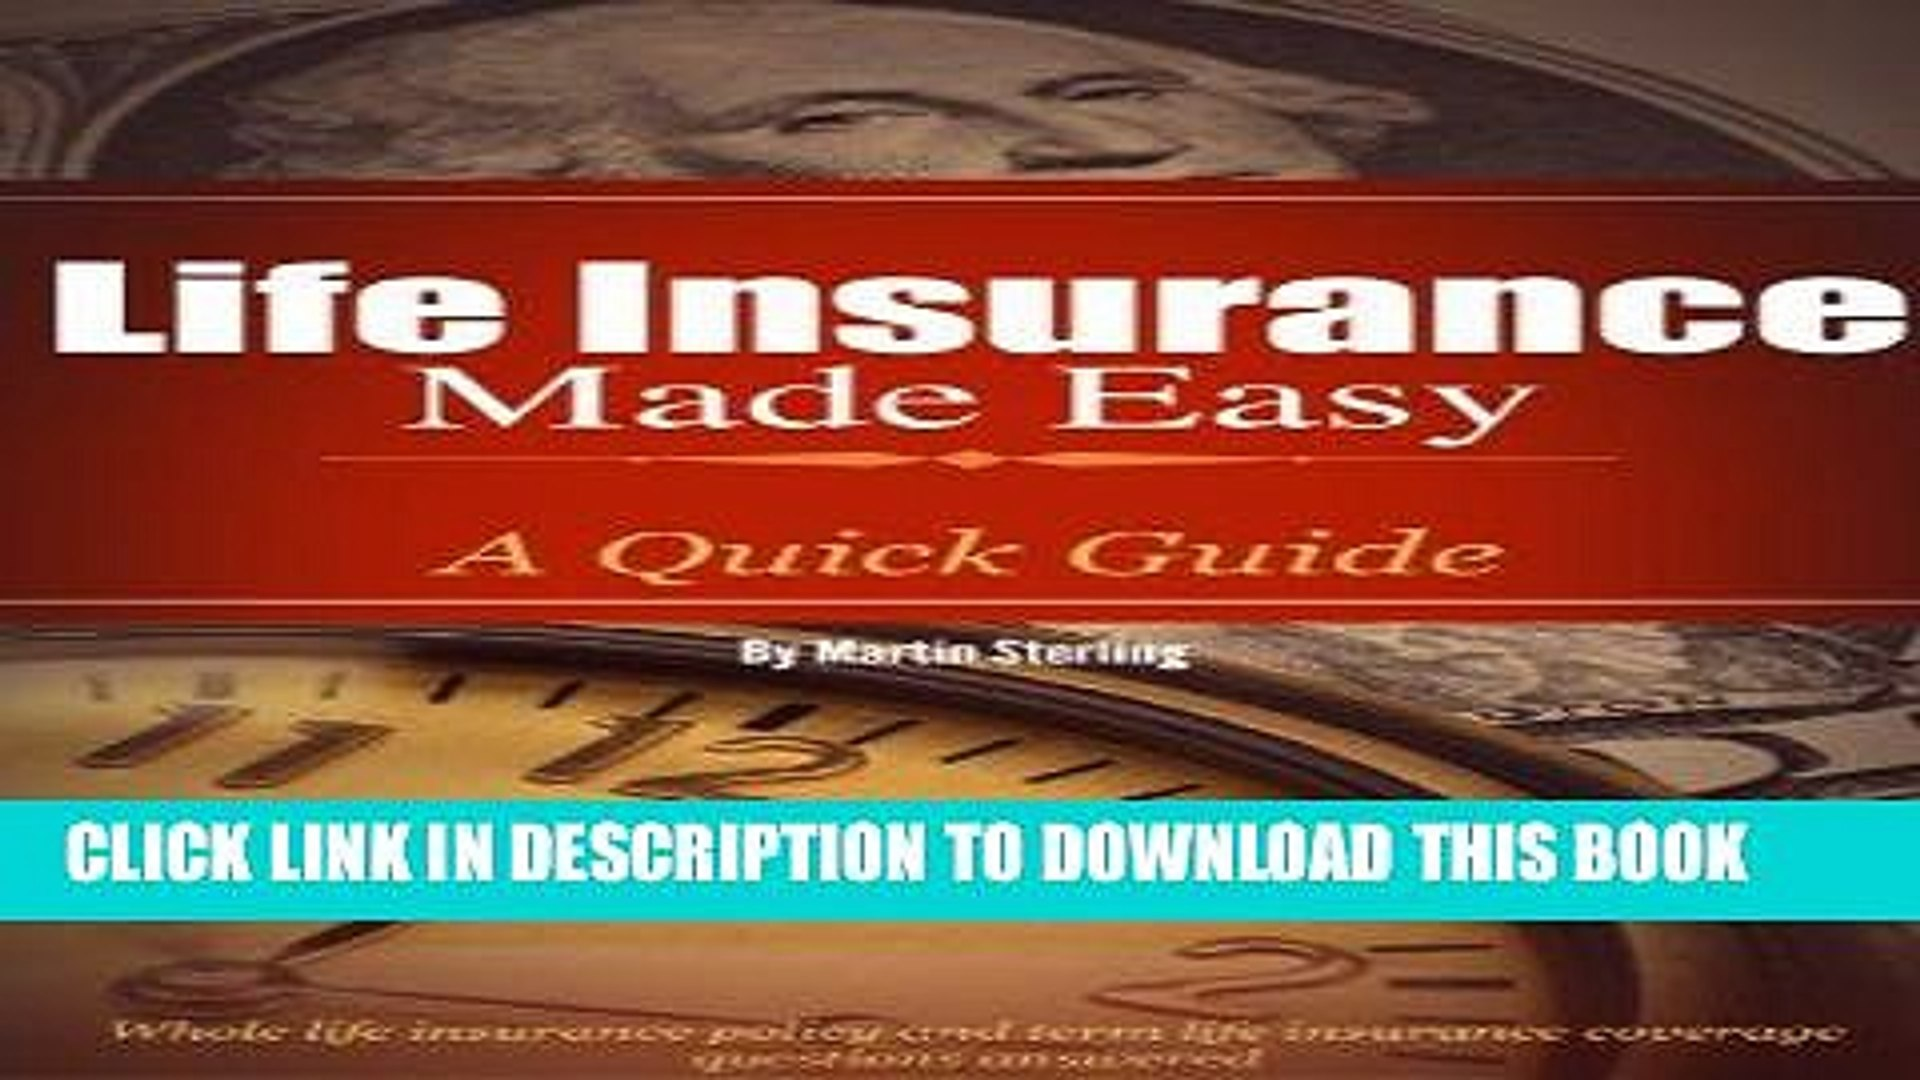 [PDF] Life Insurance Made Easy: A Quick Guide - Whole Life Insurance Policy and Term Life